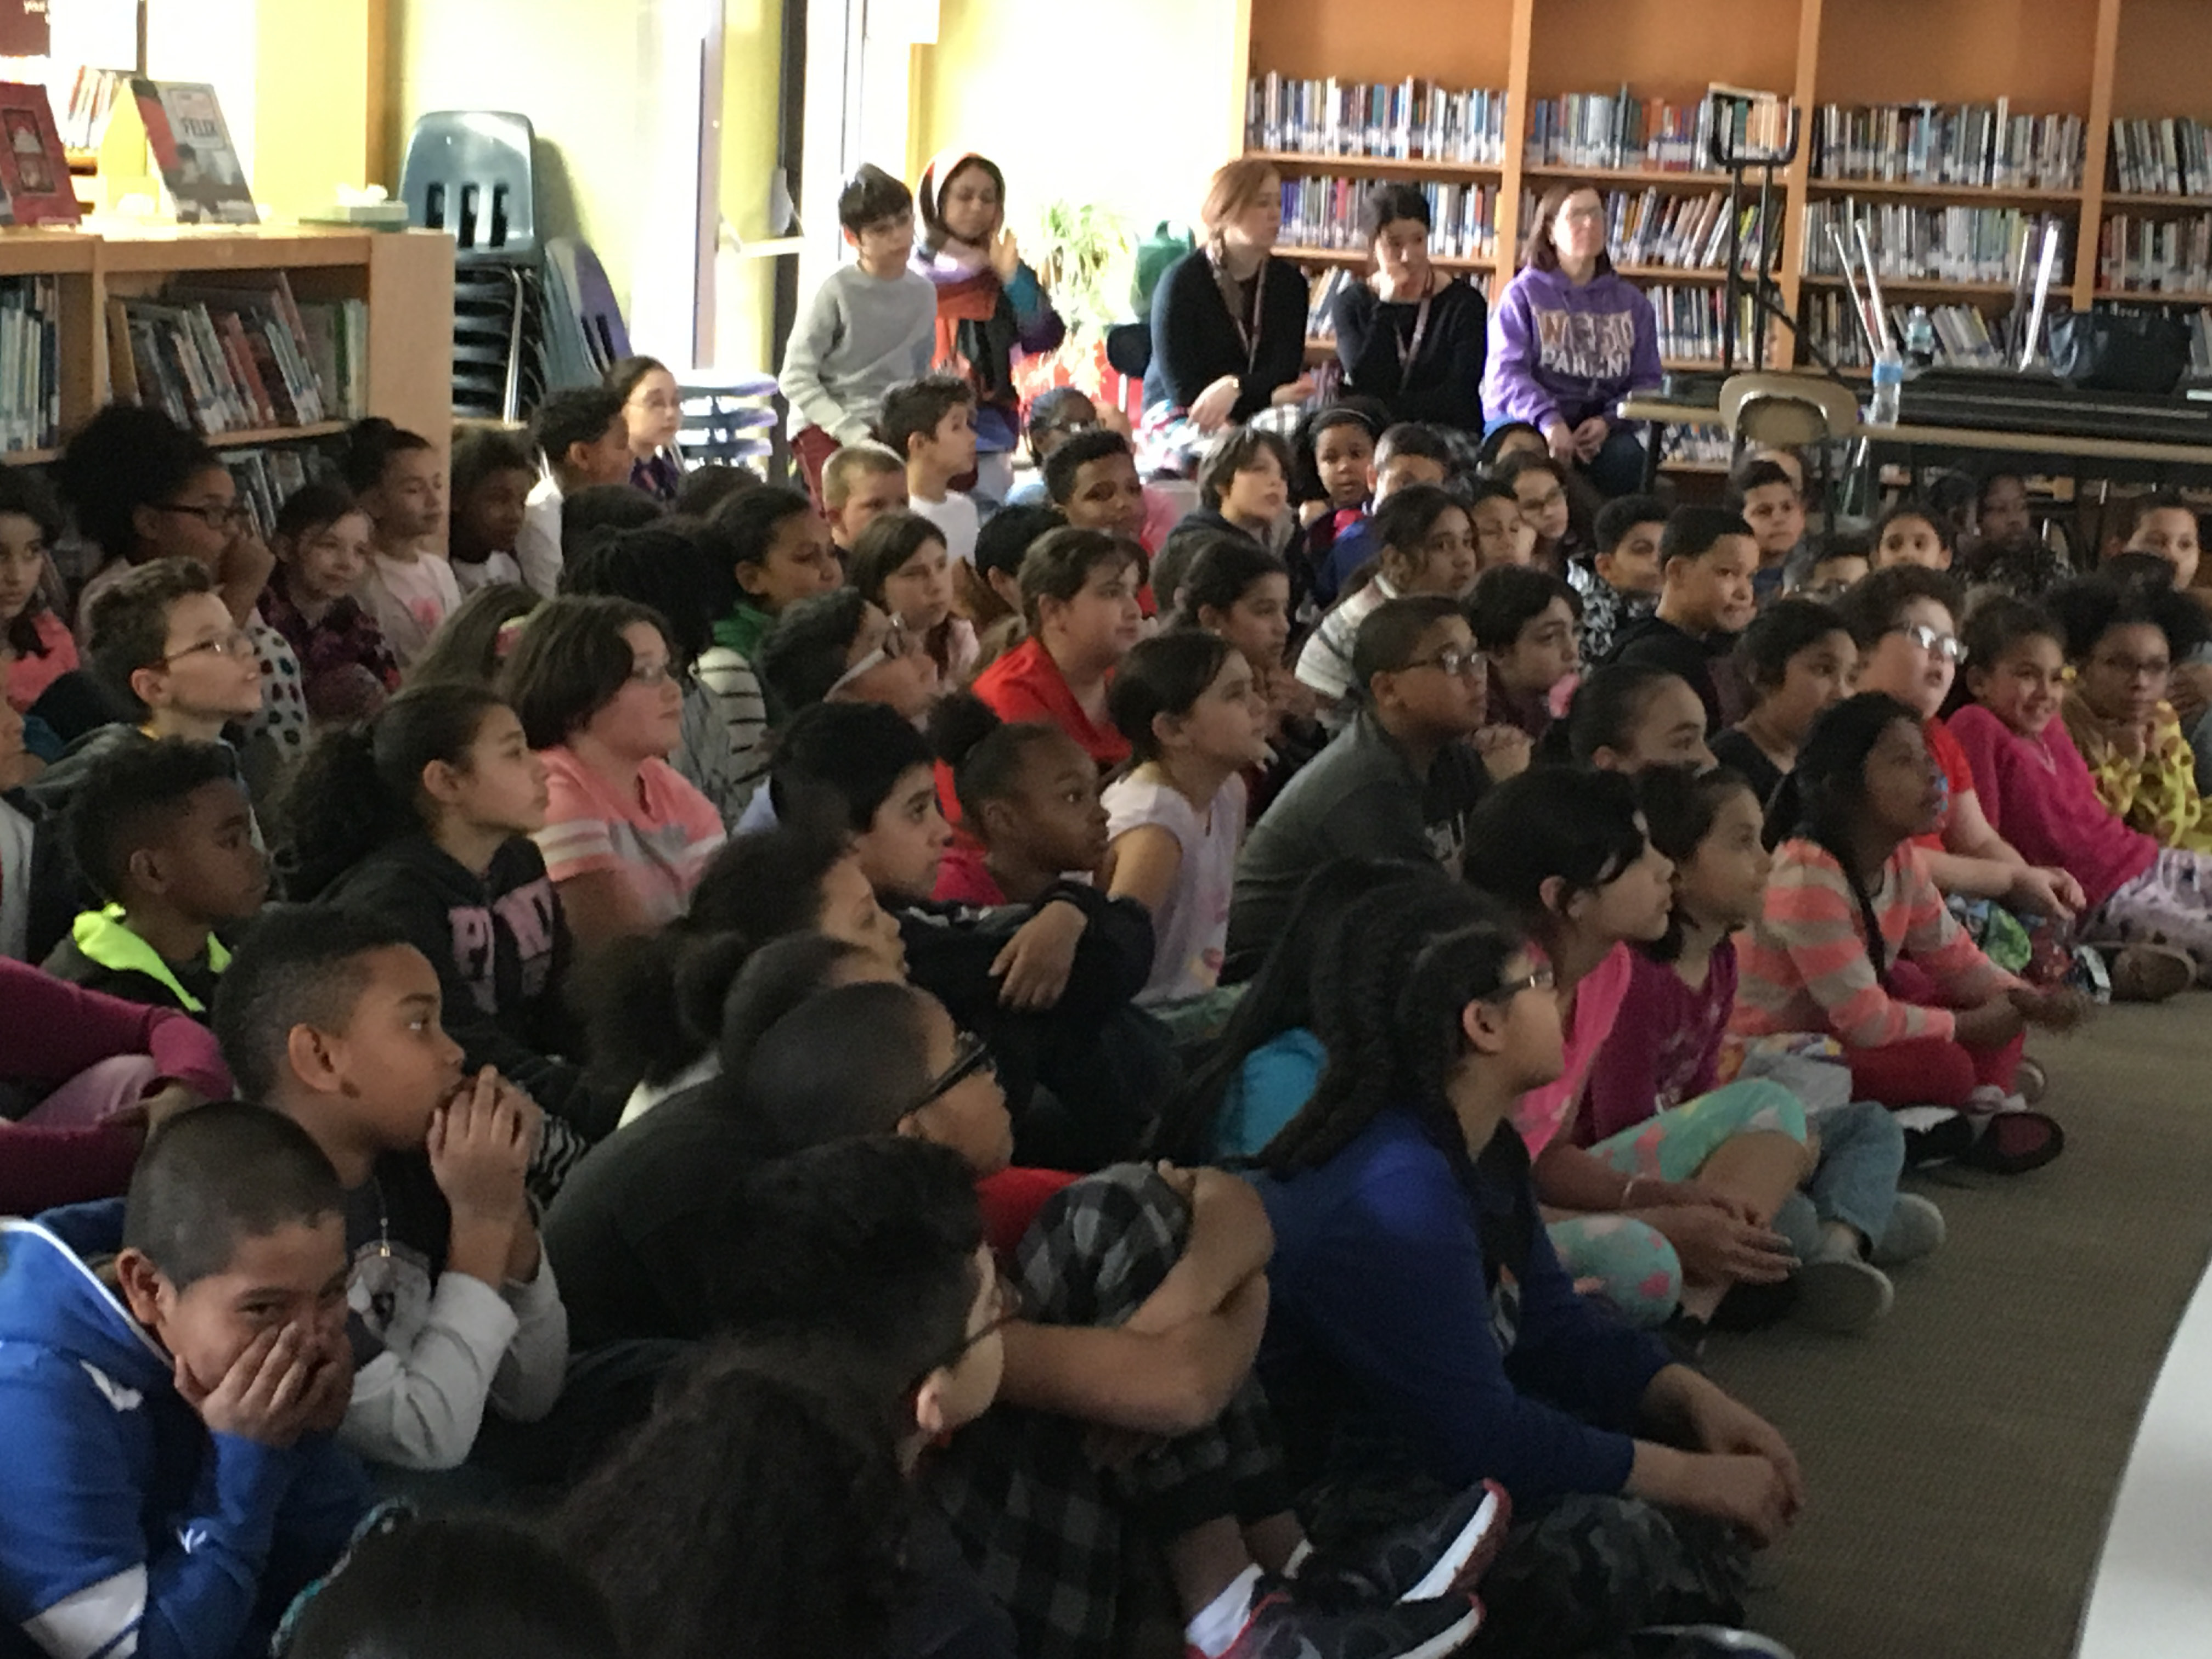 Casimir Pulaski Elementary School fourth-graders listen to a presentation on Meriden history by seventh-graders from Saint Joseph School on Friday, March 3, 2017. | Lauren Takores, Record-Journal